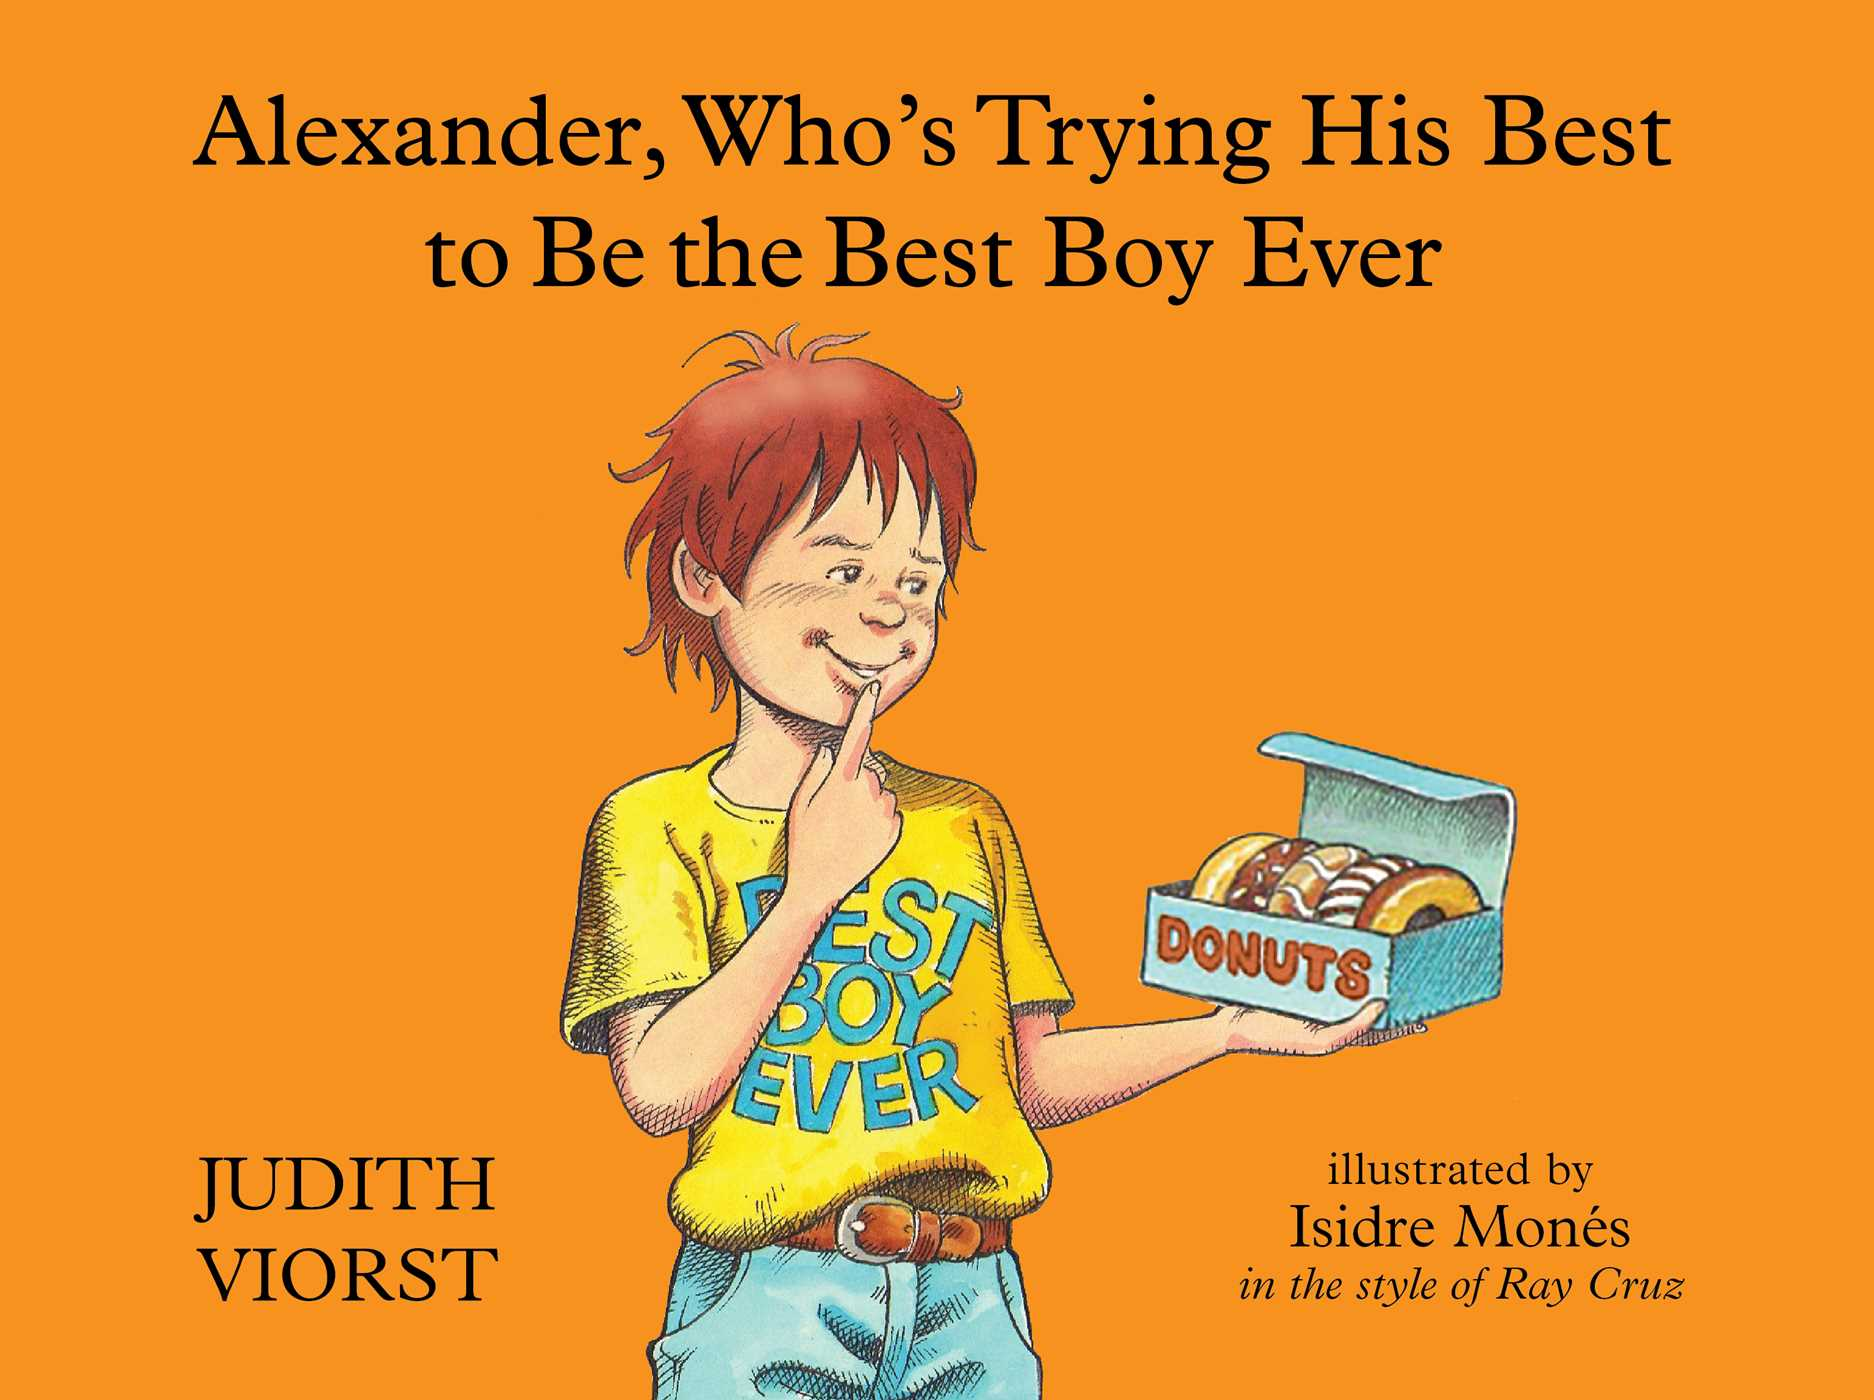 Alexander-whos-trying-his-best-to-be-the-best-9781481423540_hr